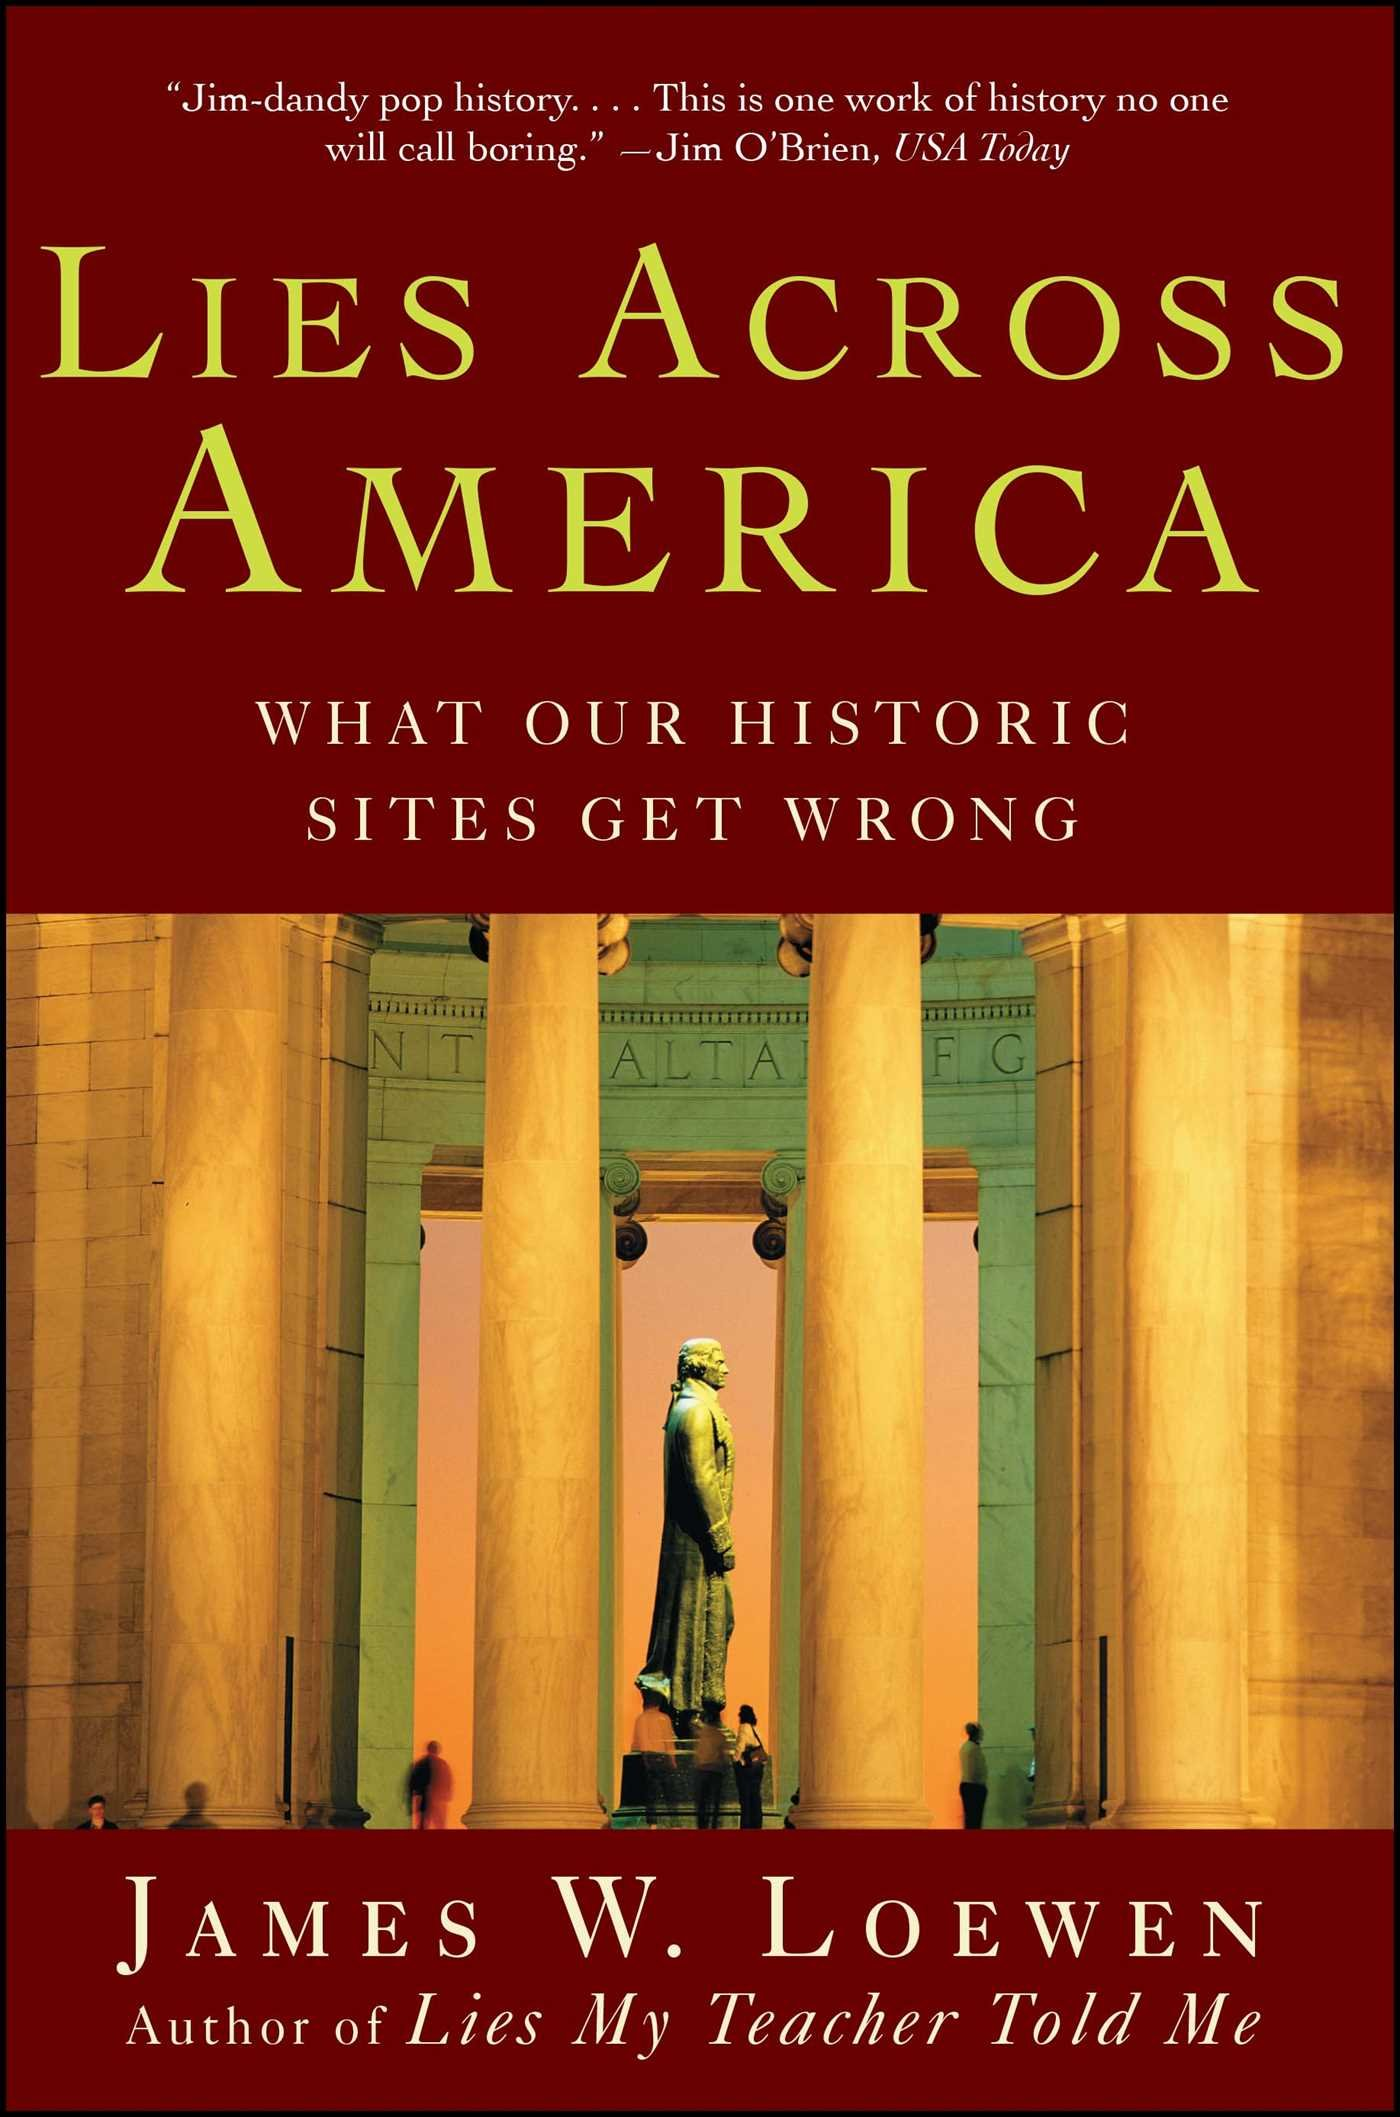 lies across america what our historic sites get wrong james w lies across america what our historic sites get wrong james w loewen 9780743296298 com books